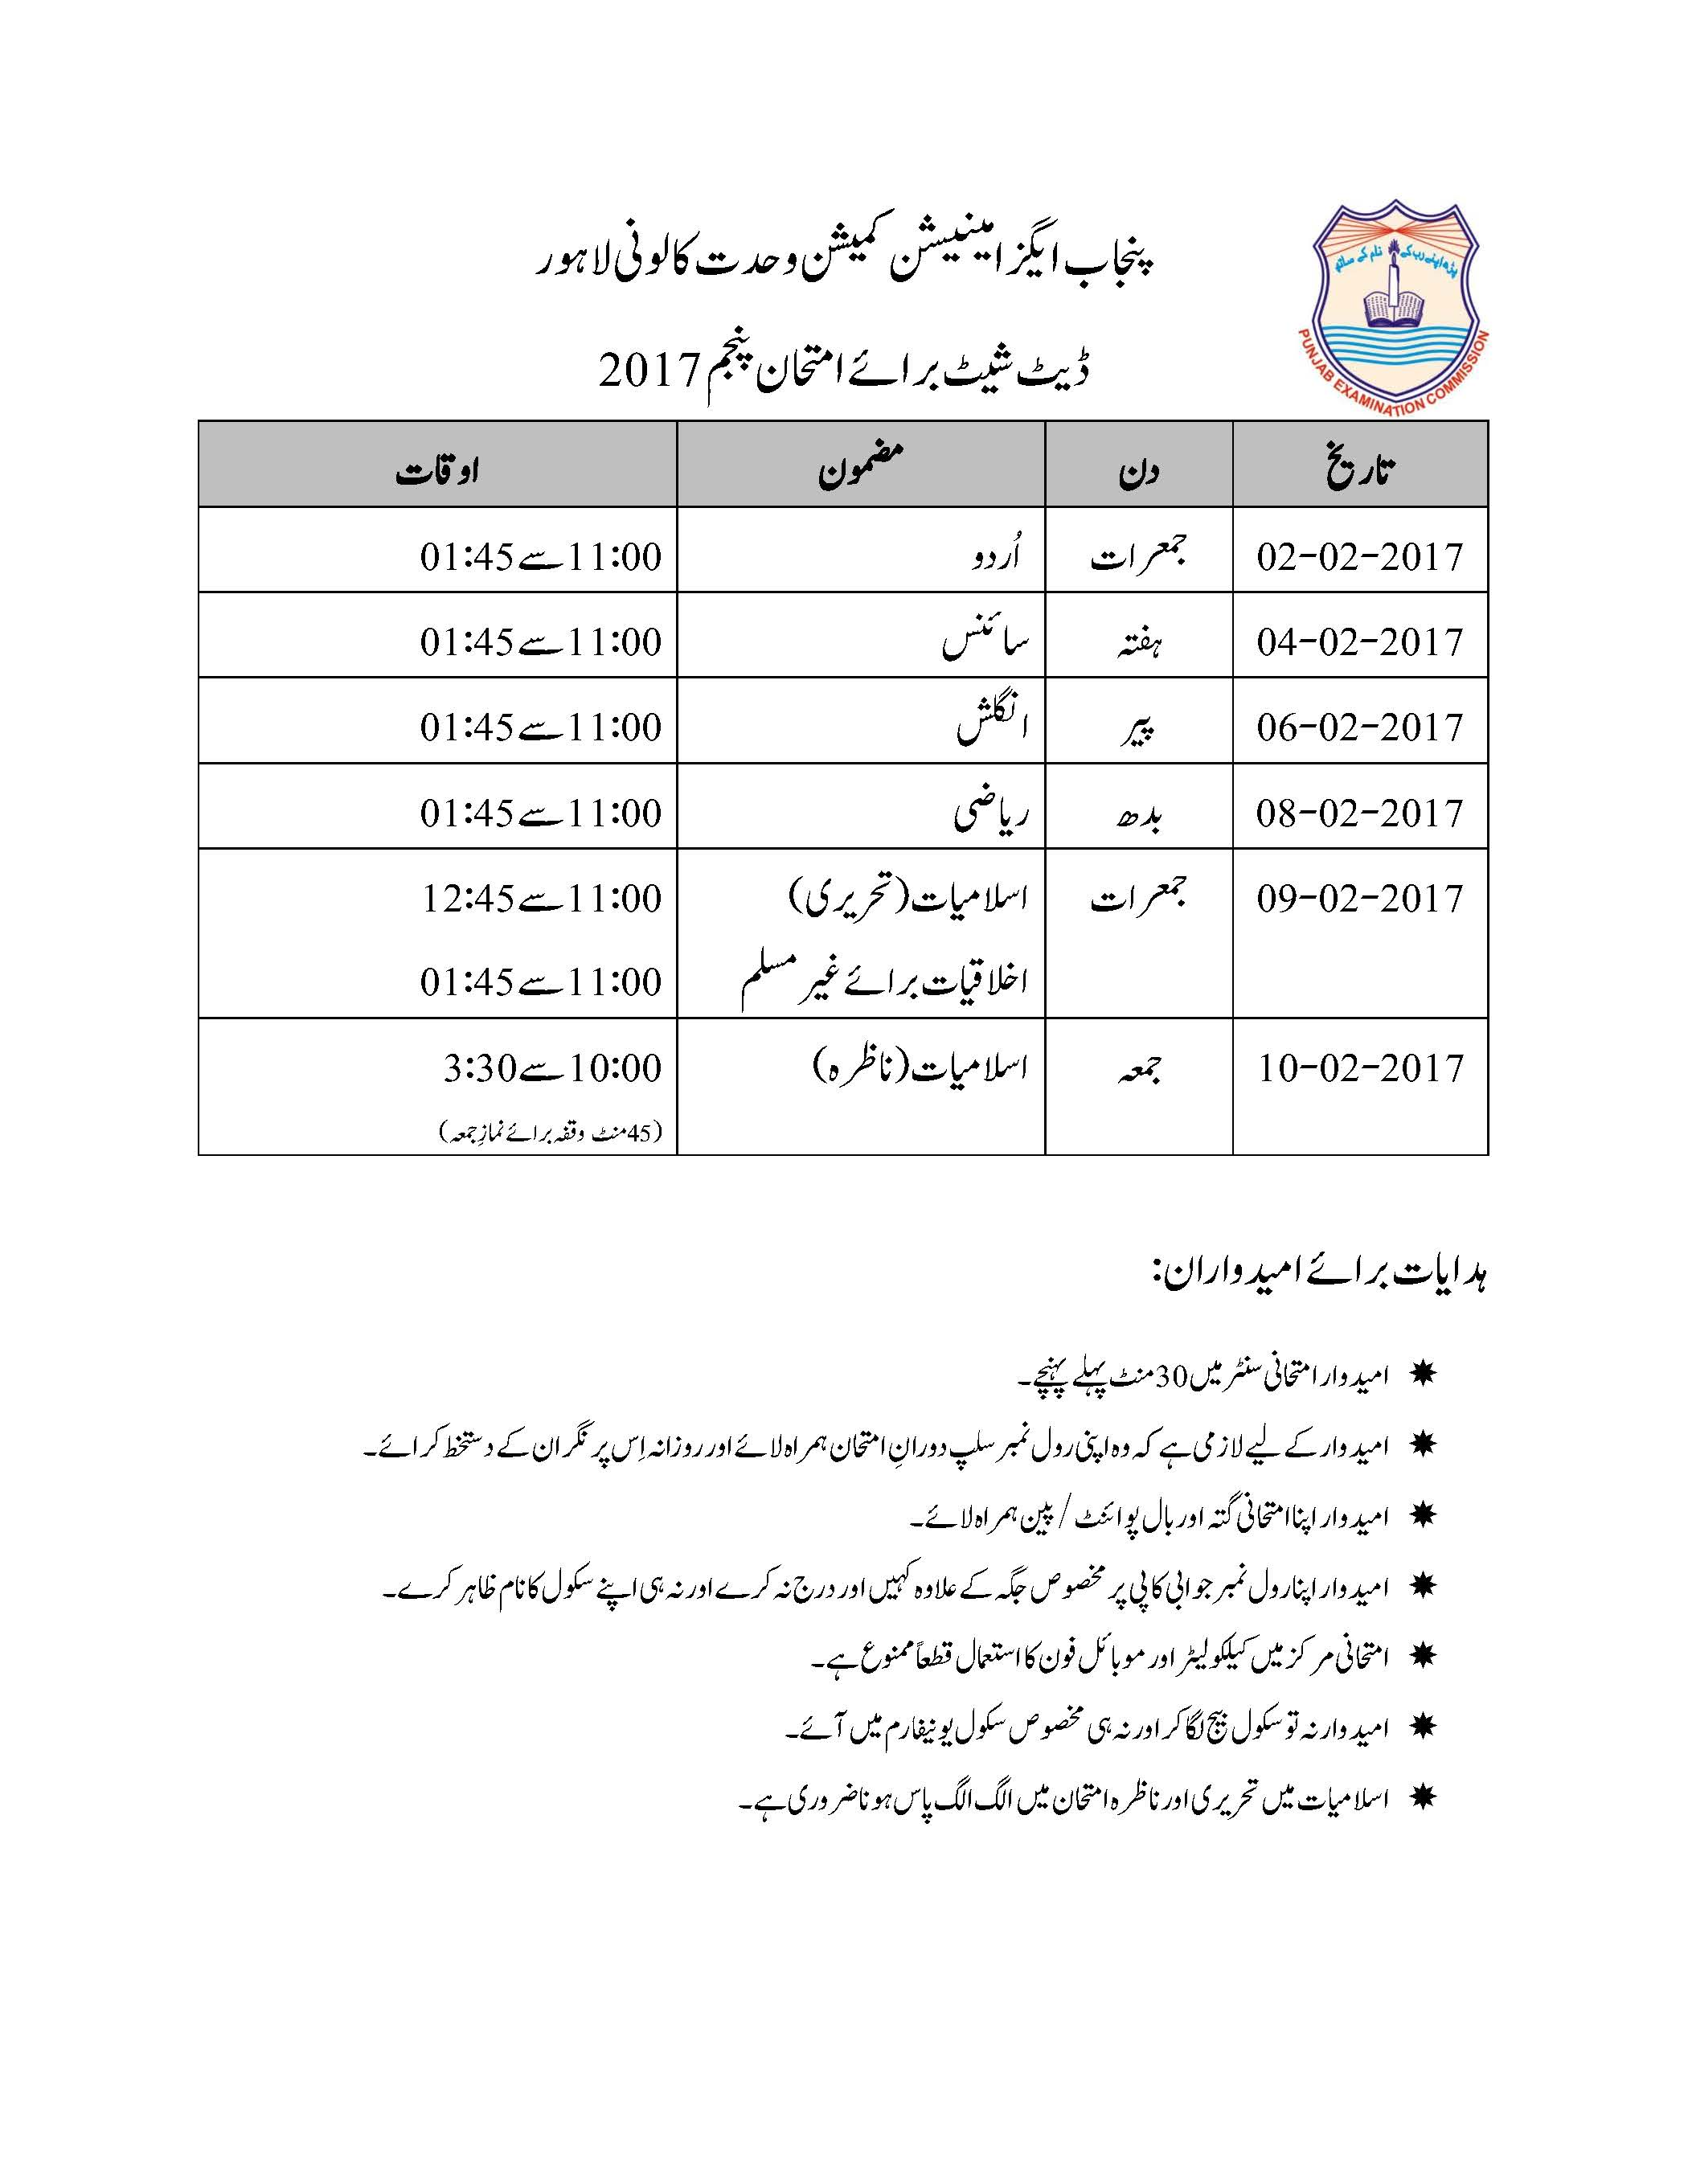 Examination exam schedule in 2017 59